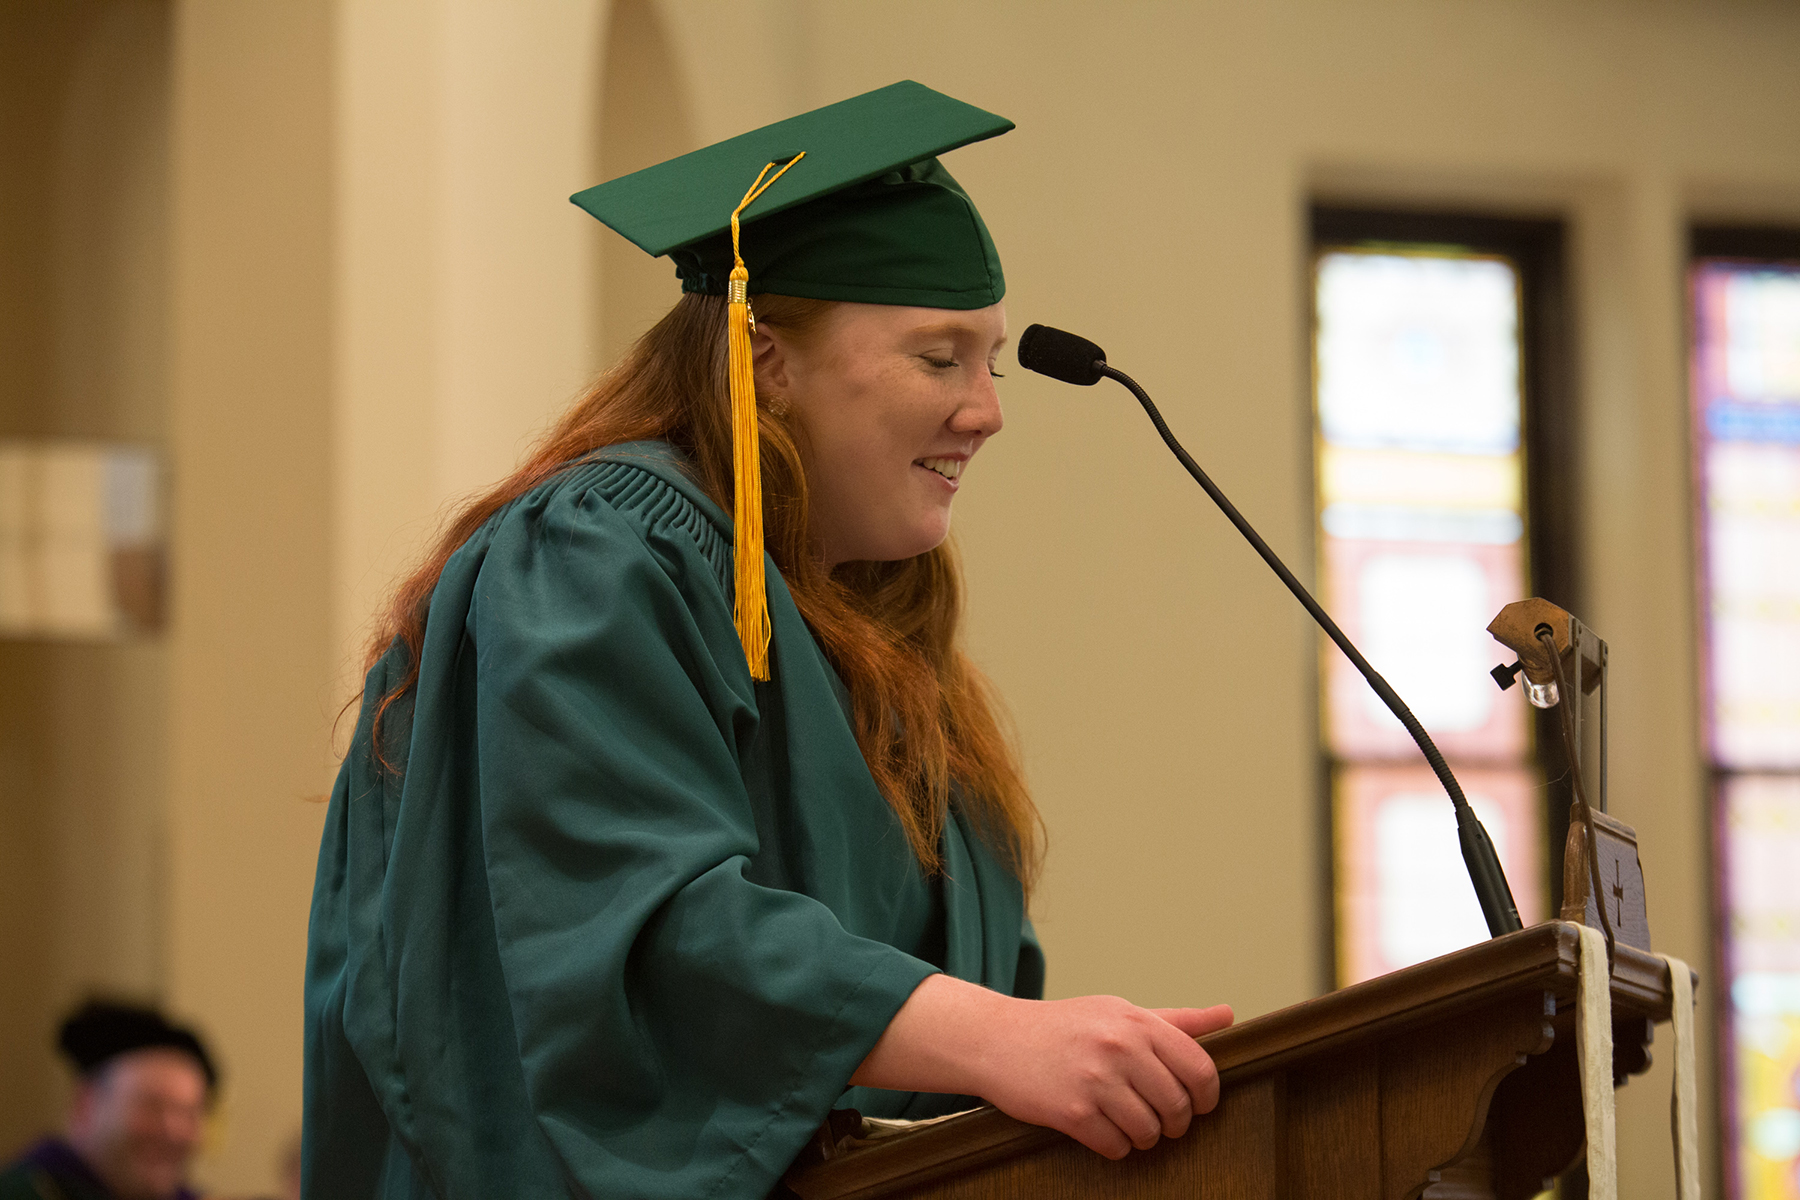 Olivia Kiley is pictured at the podium during her graduation speech.